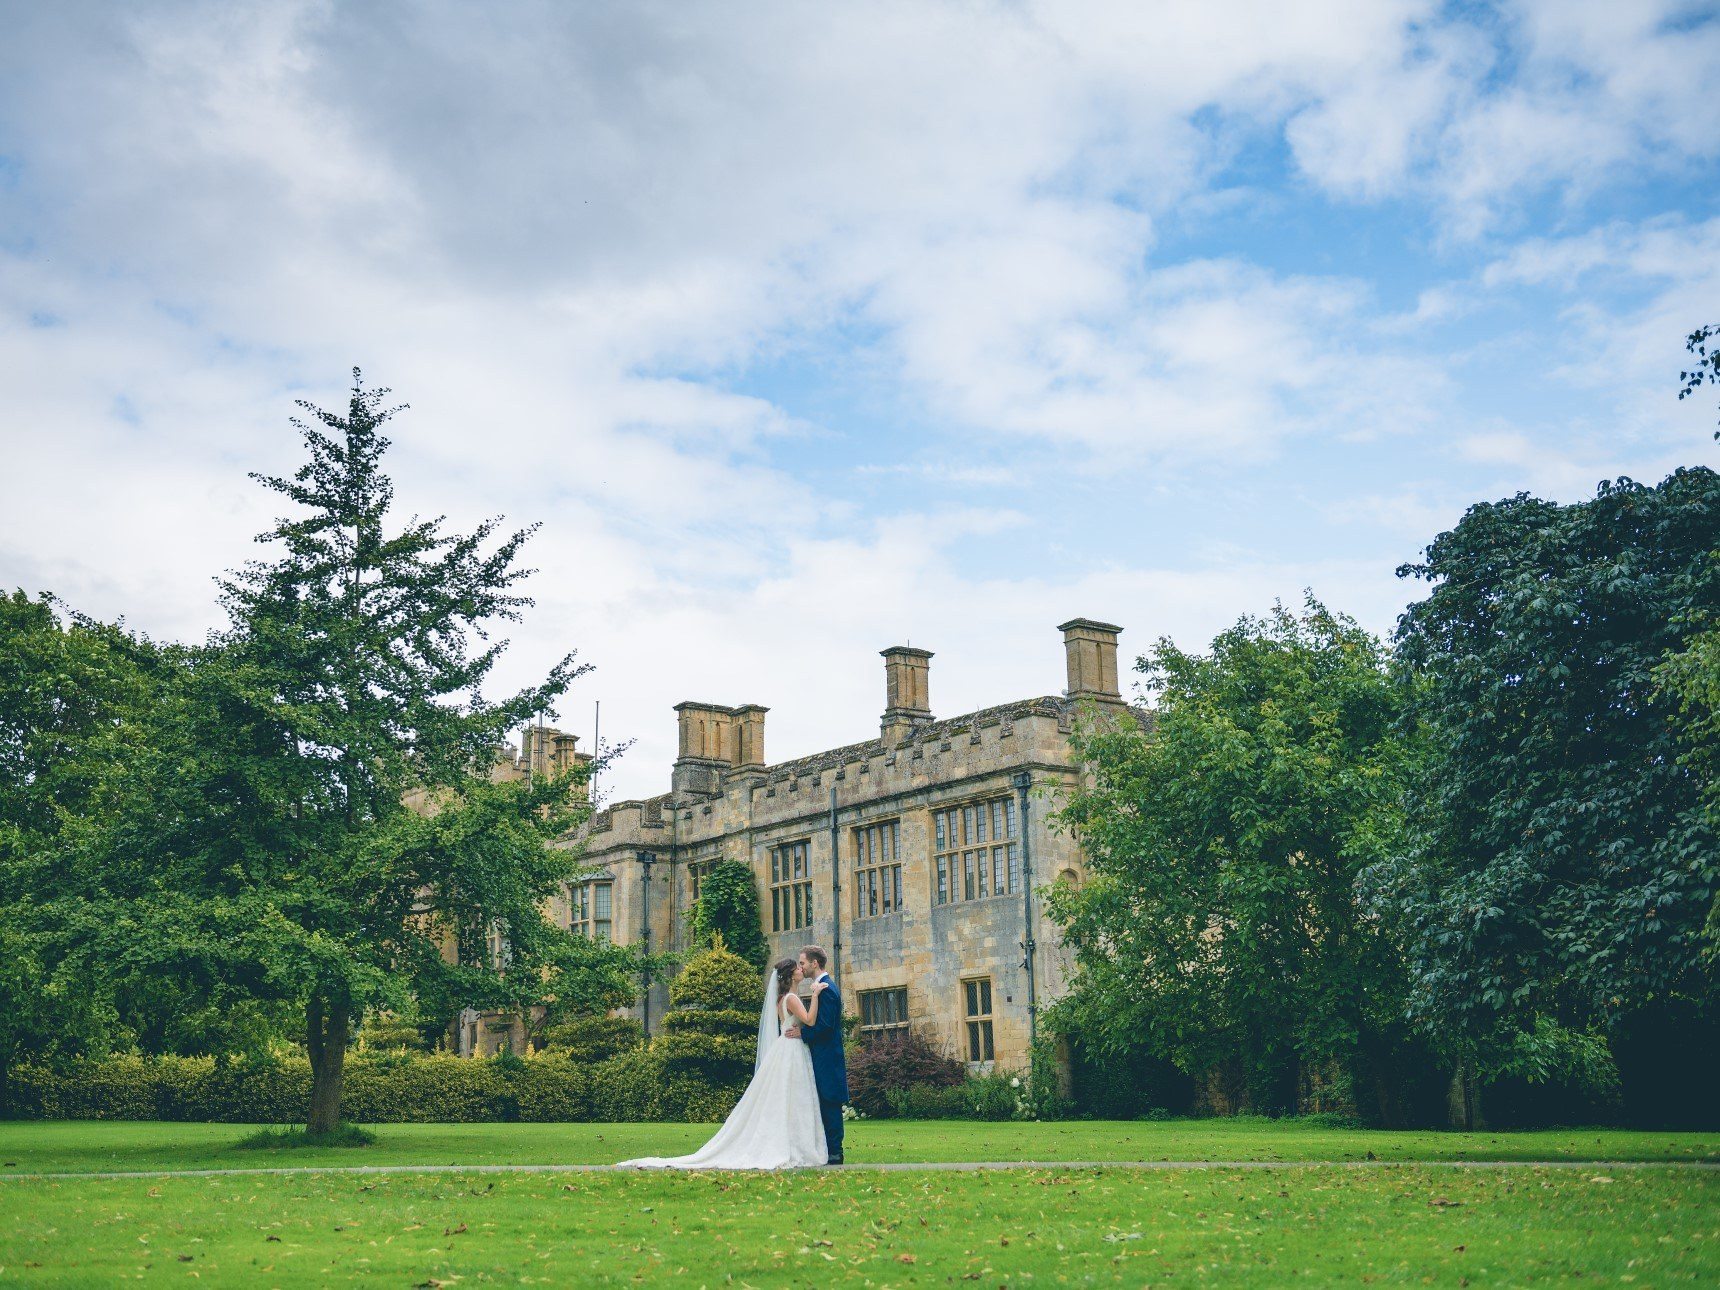 Wedding couple in front of Sudeley Castle